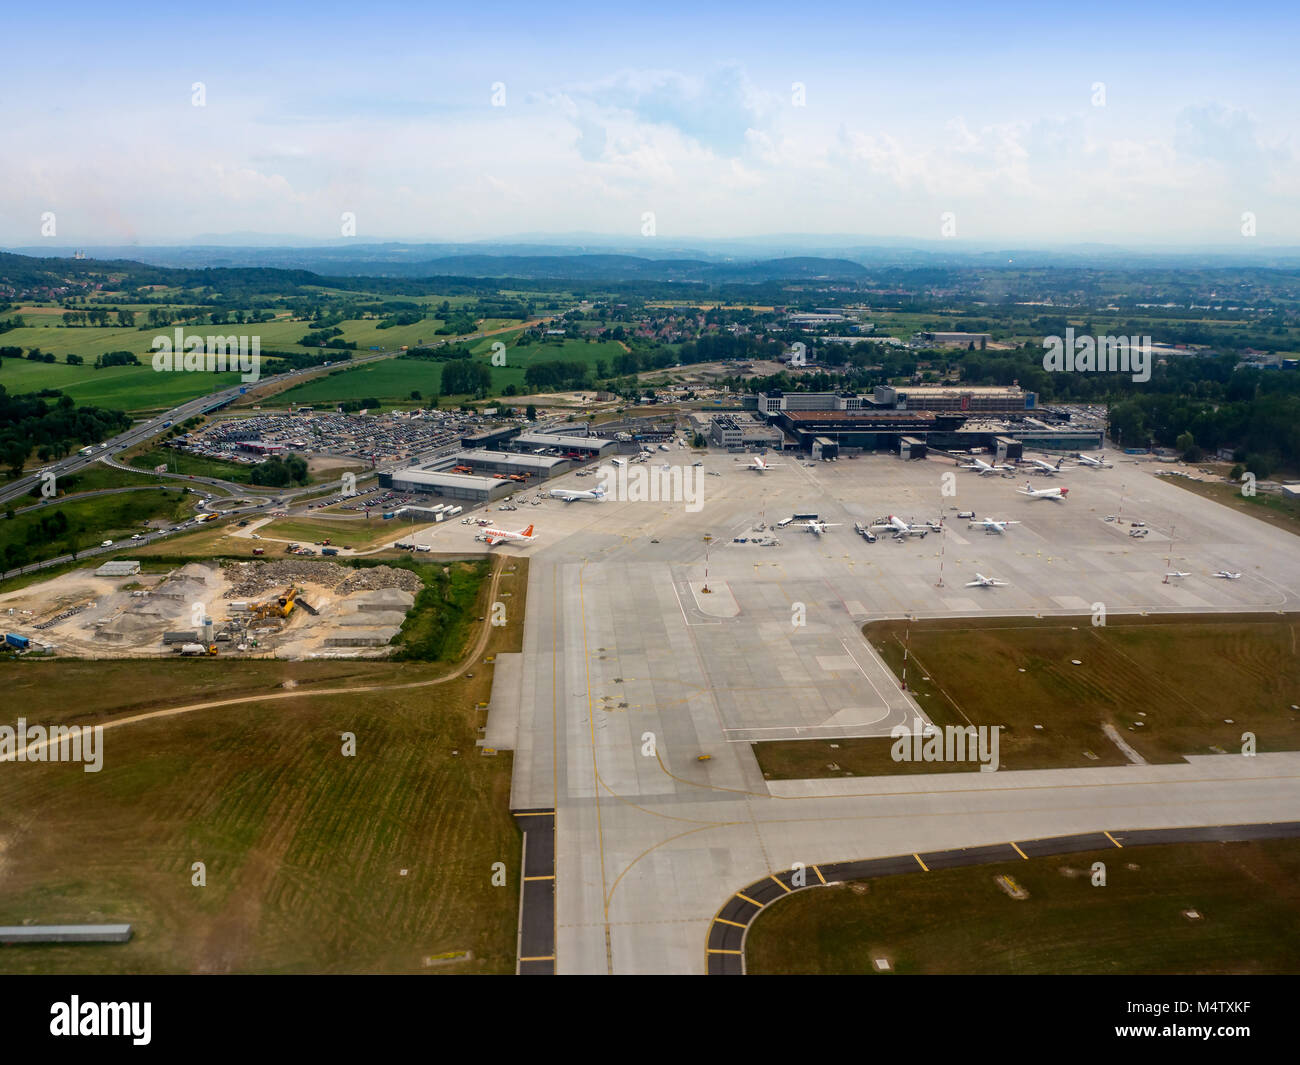 Krakow, Poland –June 27, 2017: International airport in Balice with apron, terminals, aircrafts, taxiways, construction - Stock Image